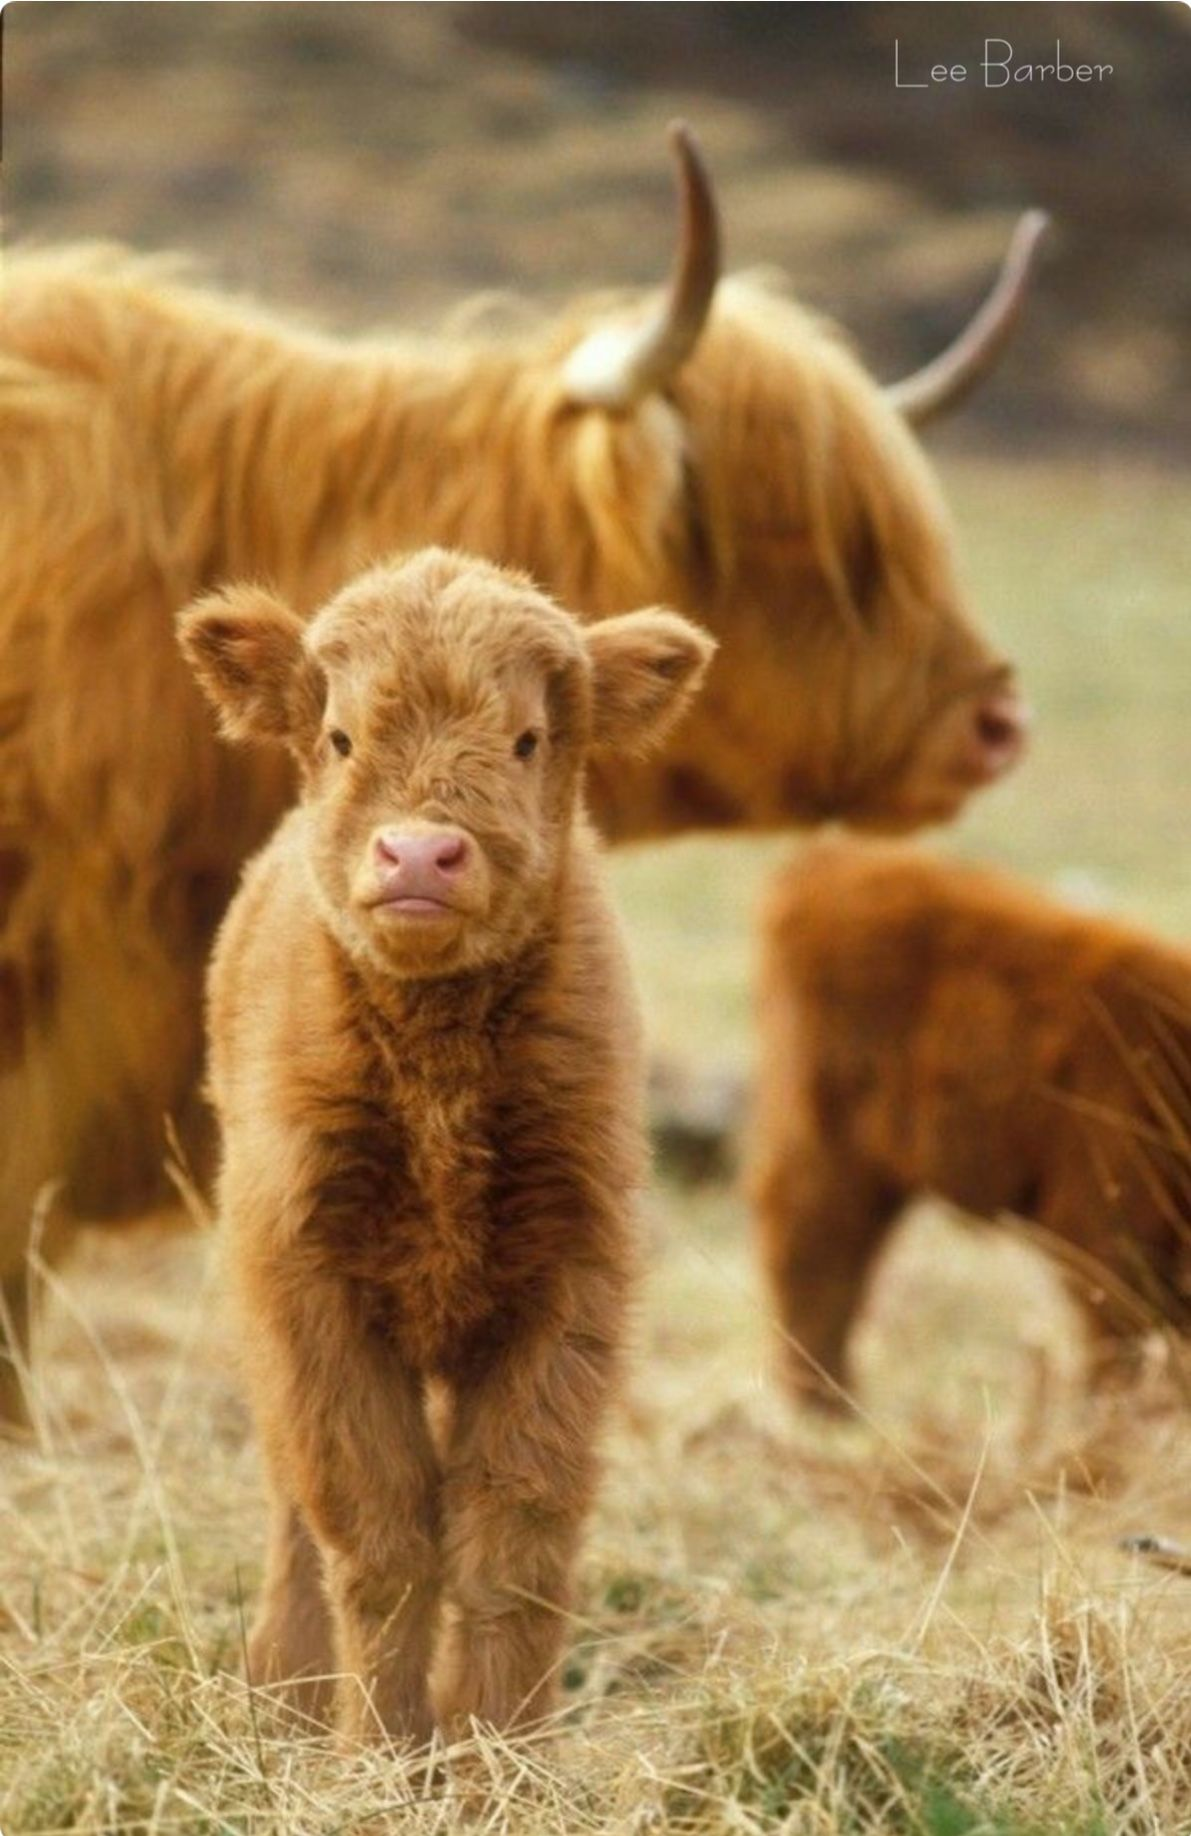 Highland Cattle Cute Little Calf With Mom In The Background Animals Cute Cows Baby Animals